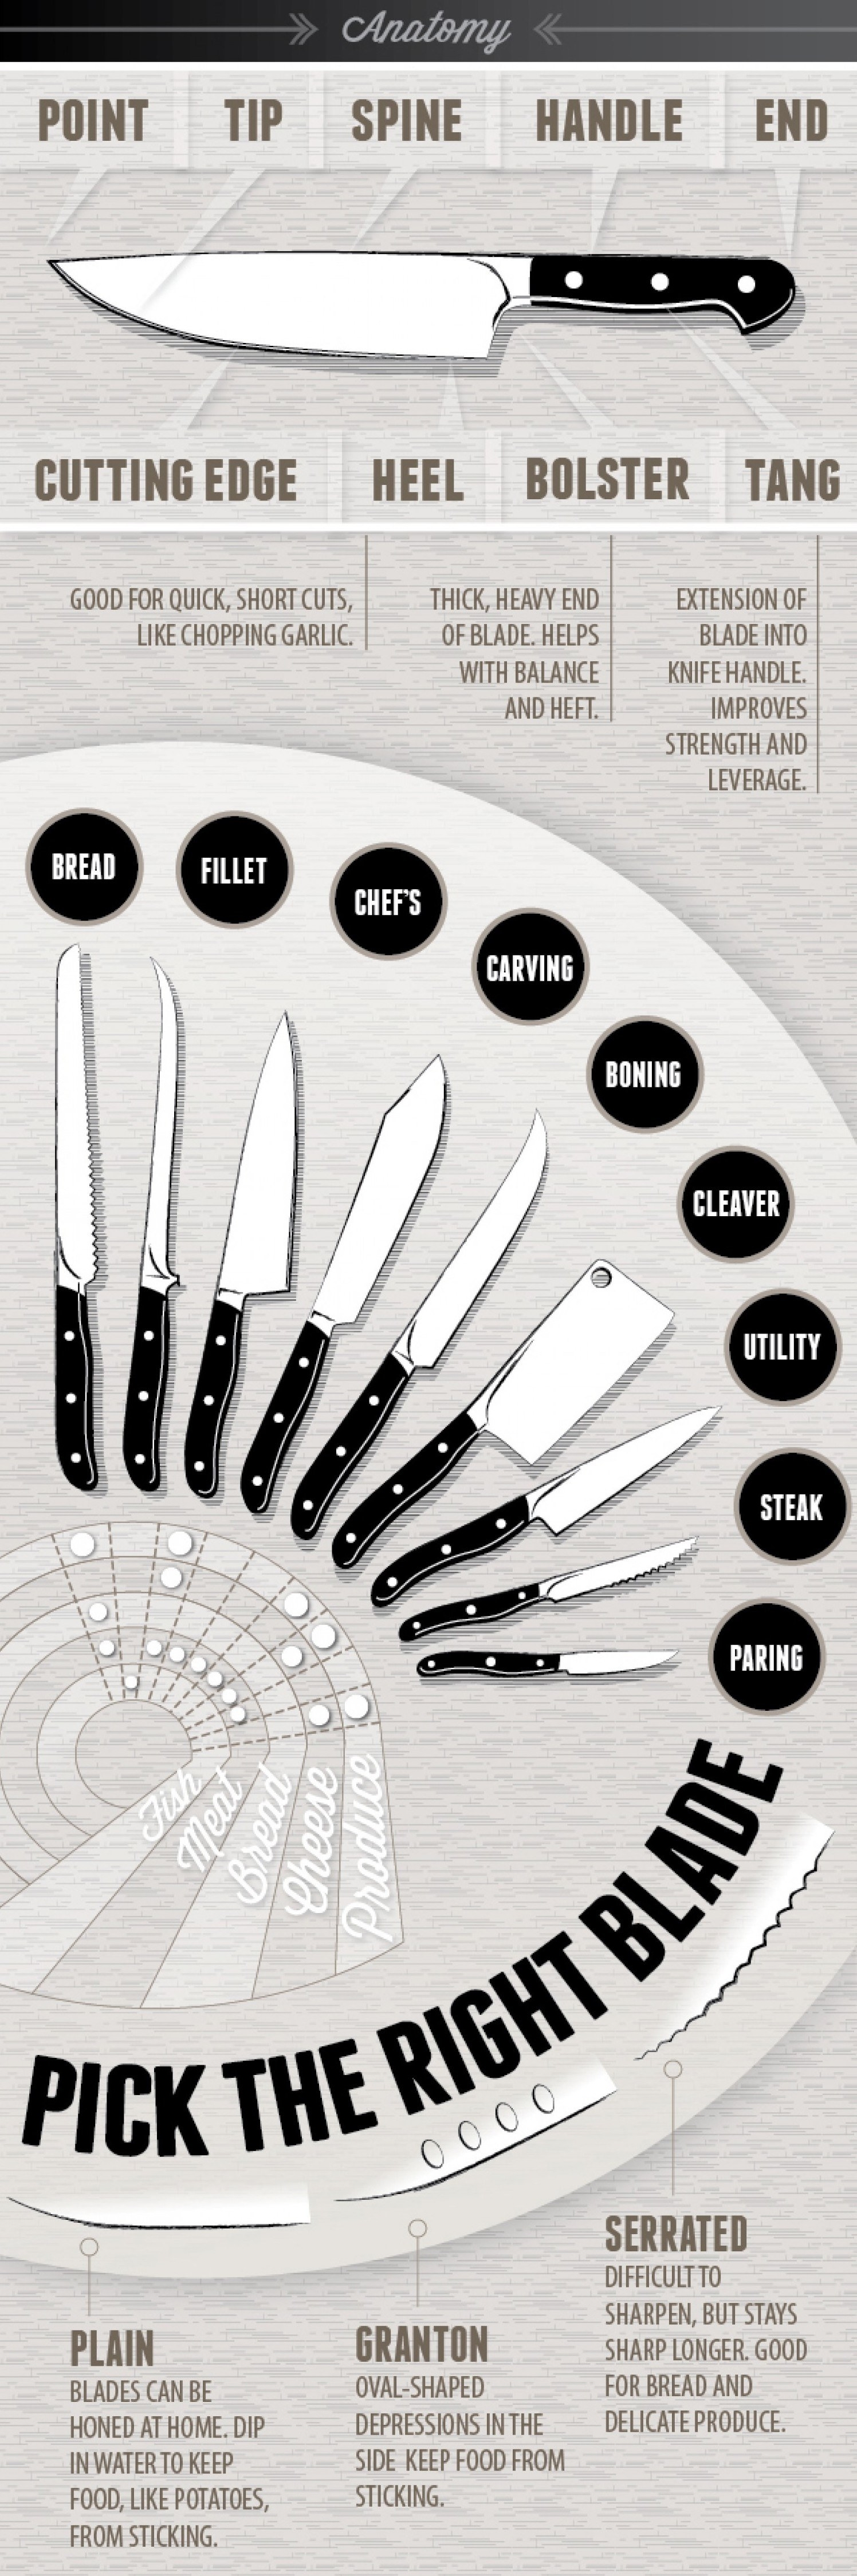 "21 Cooking Charts That'll Make Any Foodie Say ""Excuse Me, What?!"""